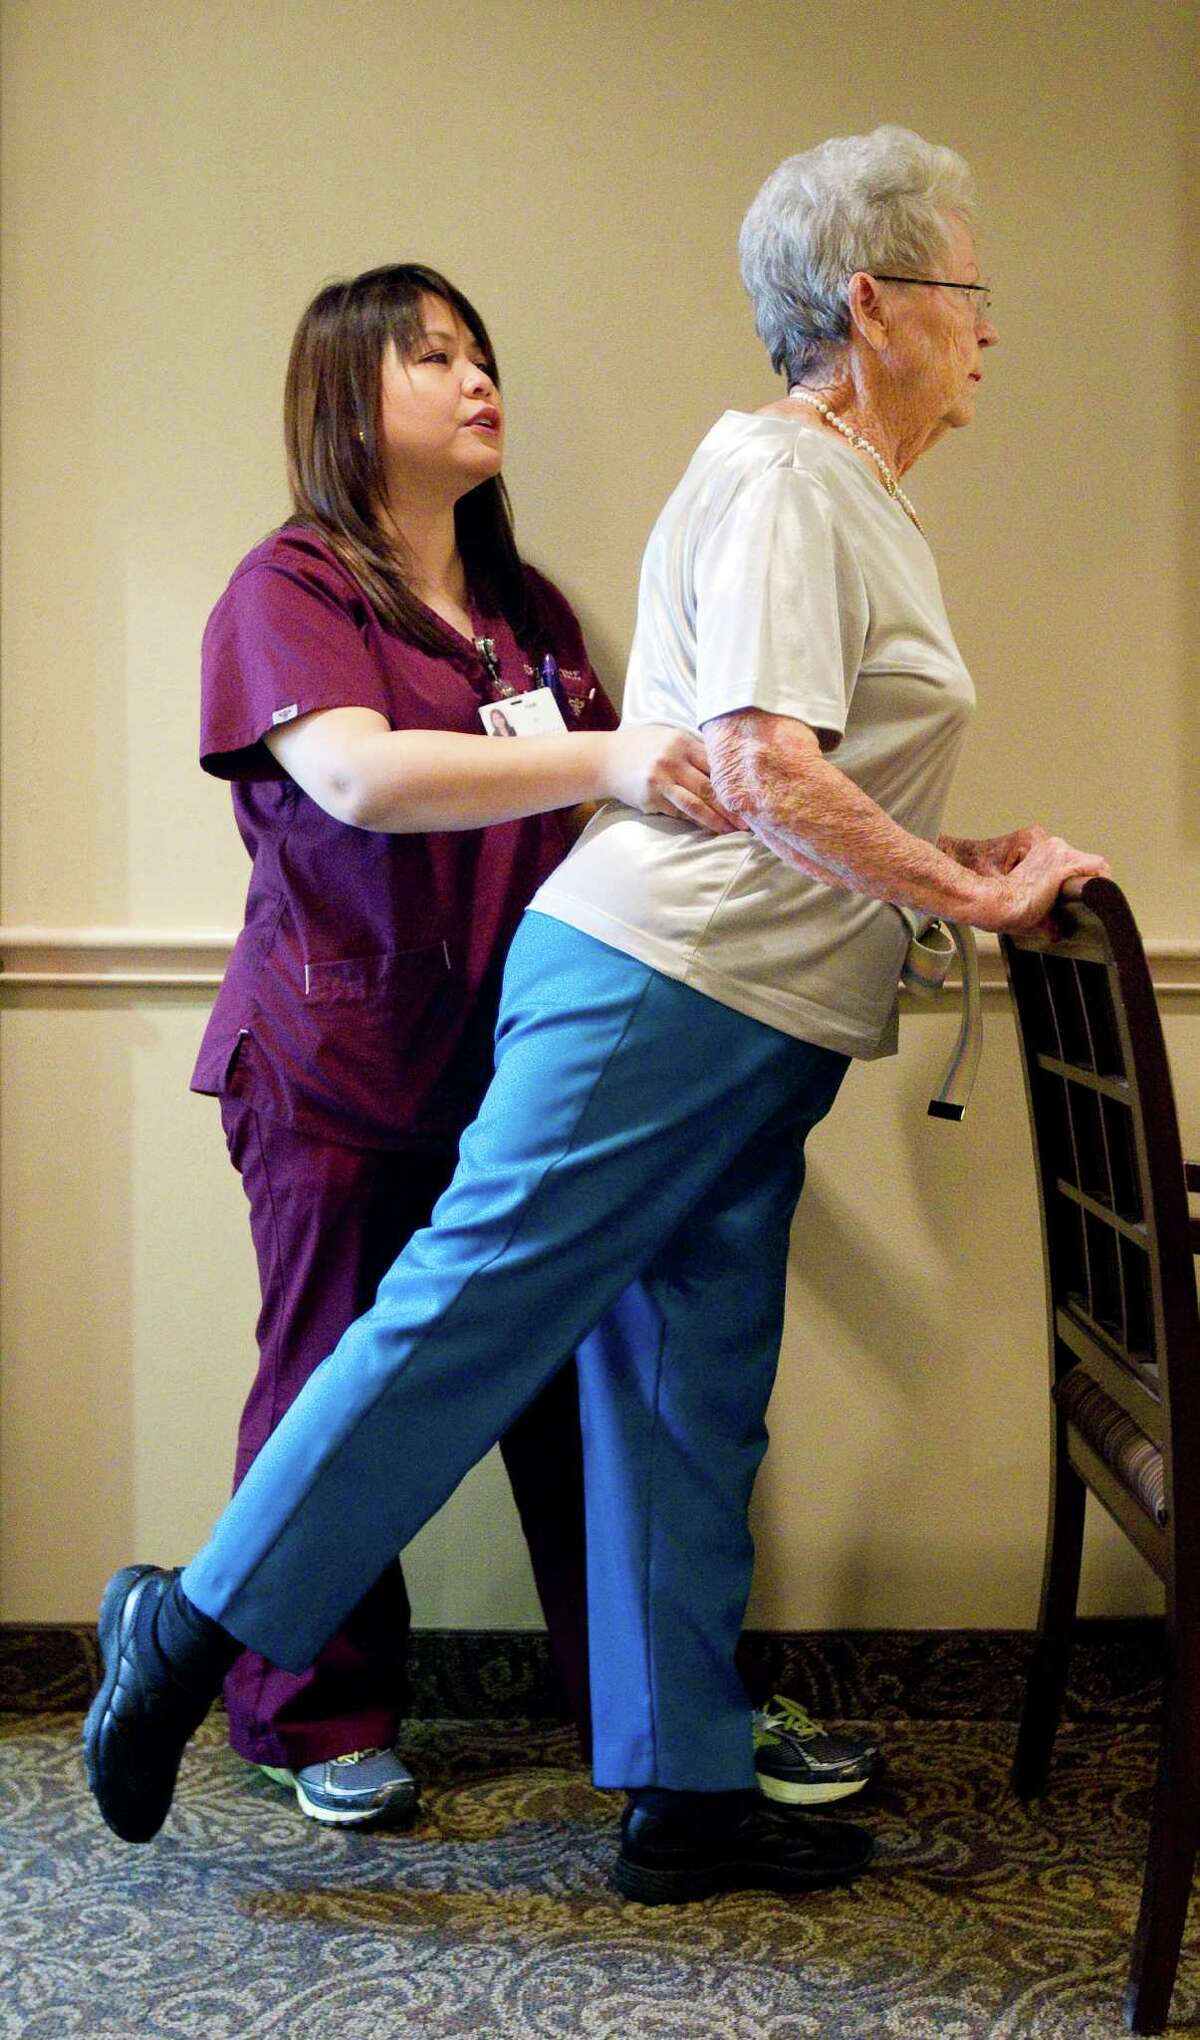 No. 15 Encompass Home Healthranked as the 15th-best workplace in the nation.